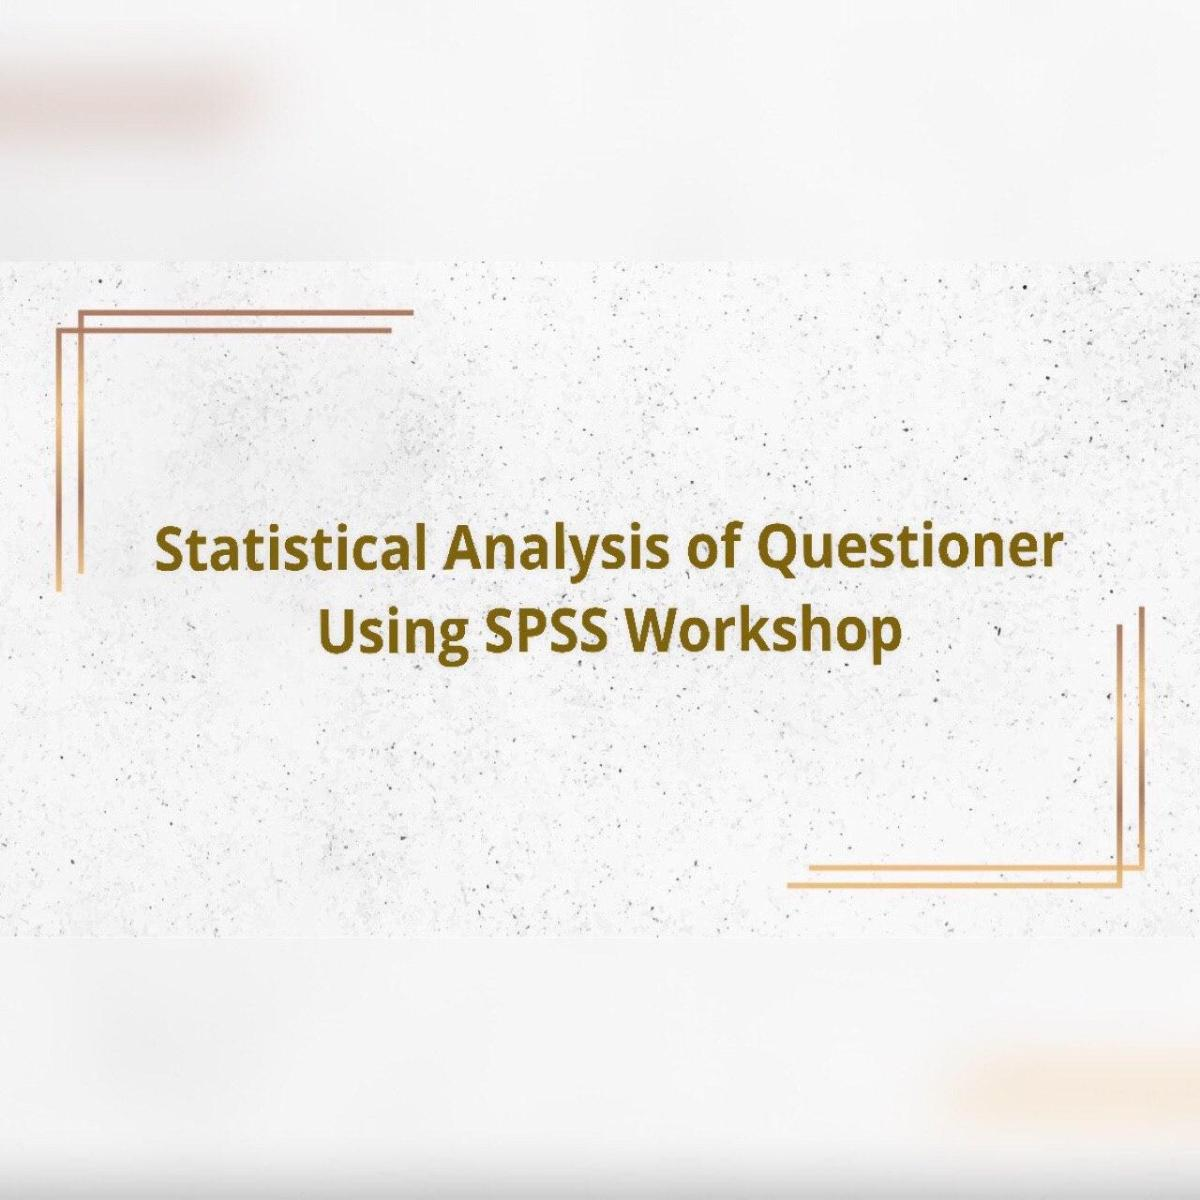 Statistical Analysis of Questioner using SPSS Workshop